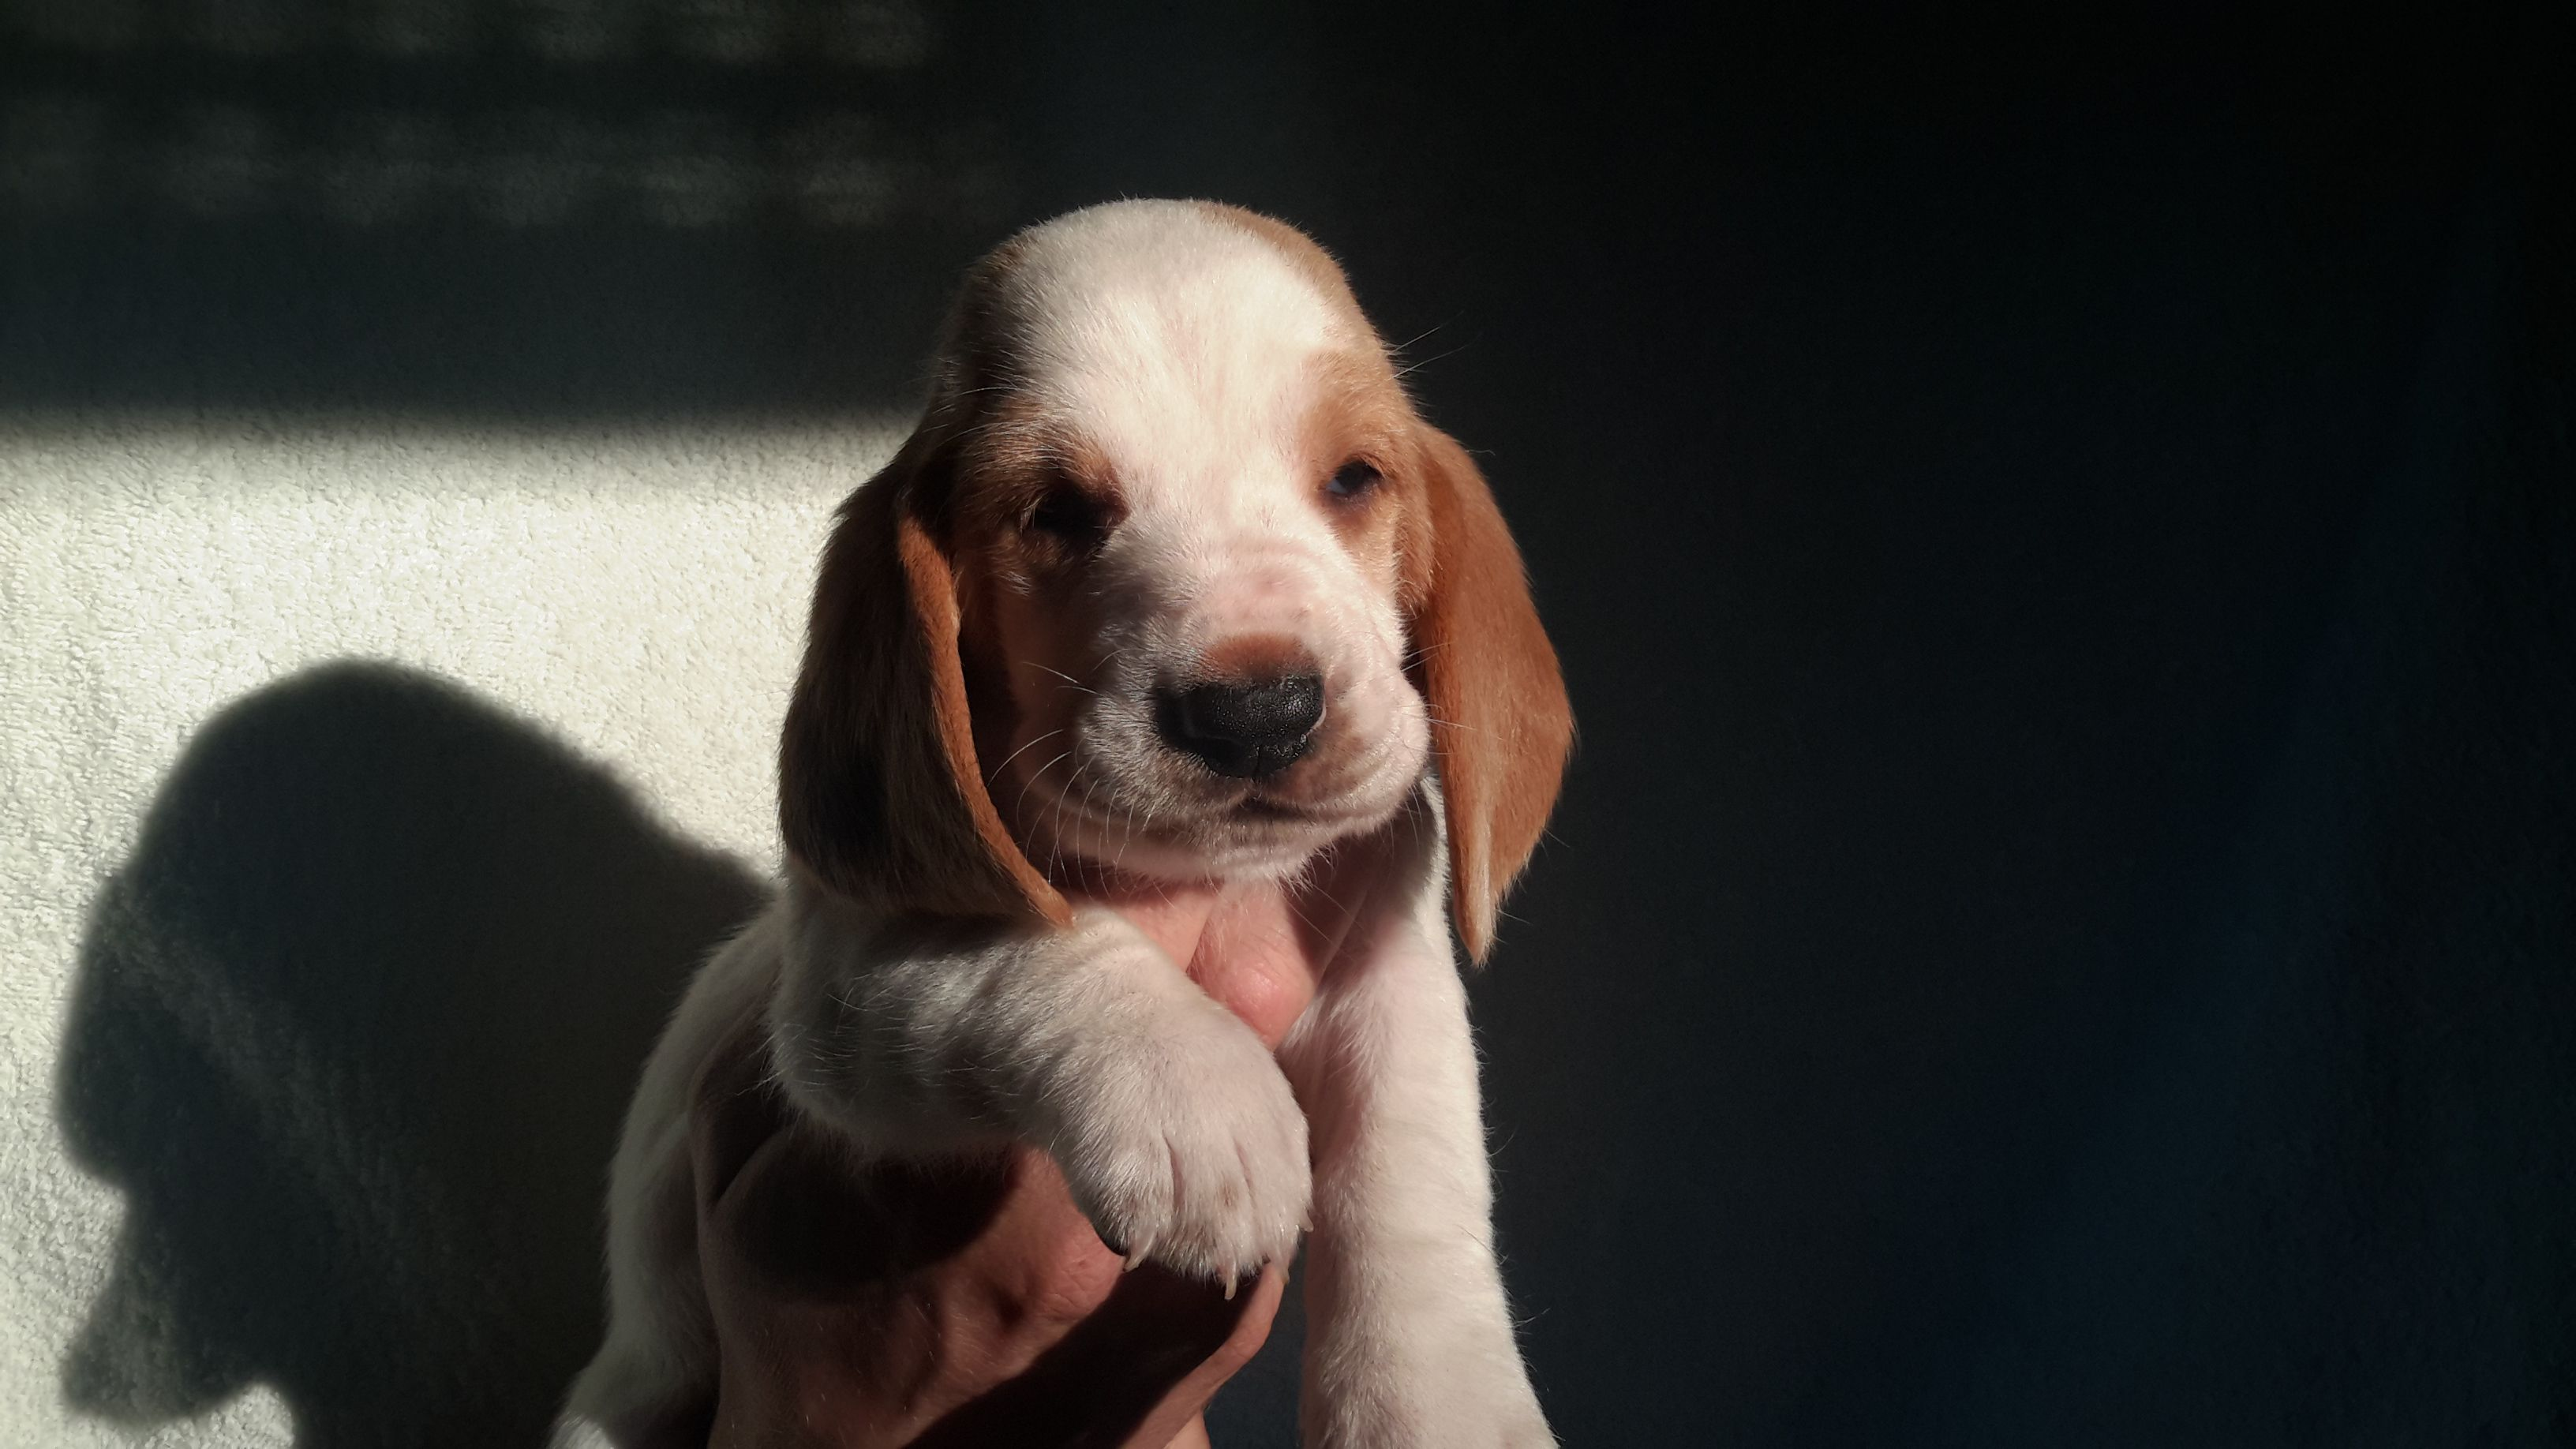 20160823 183525 compressed SaSa ReSi Bassethoundkennel